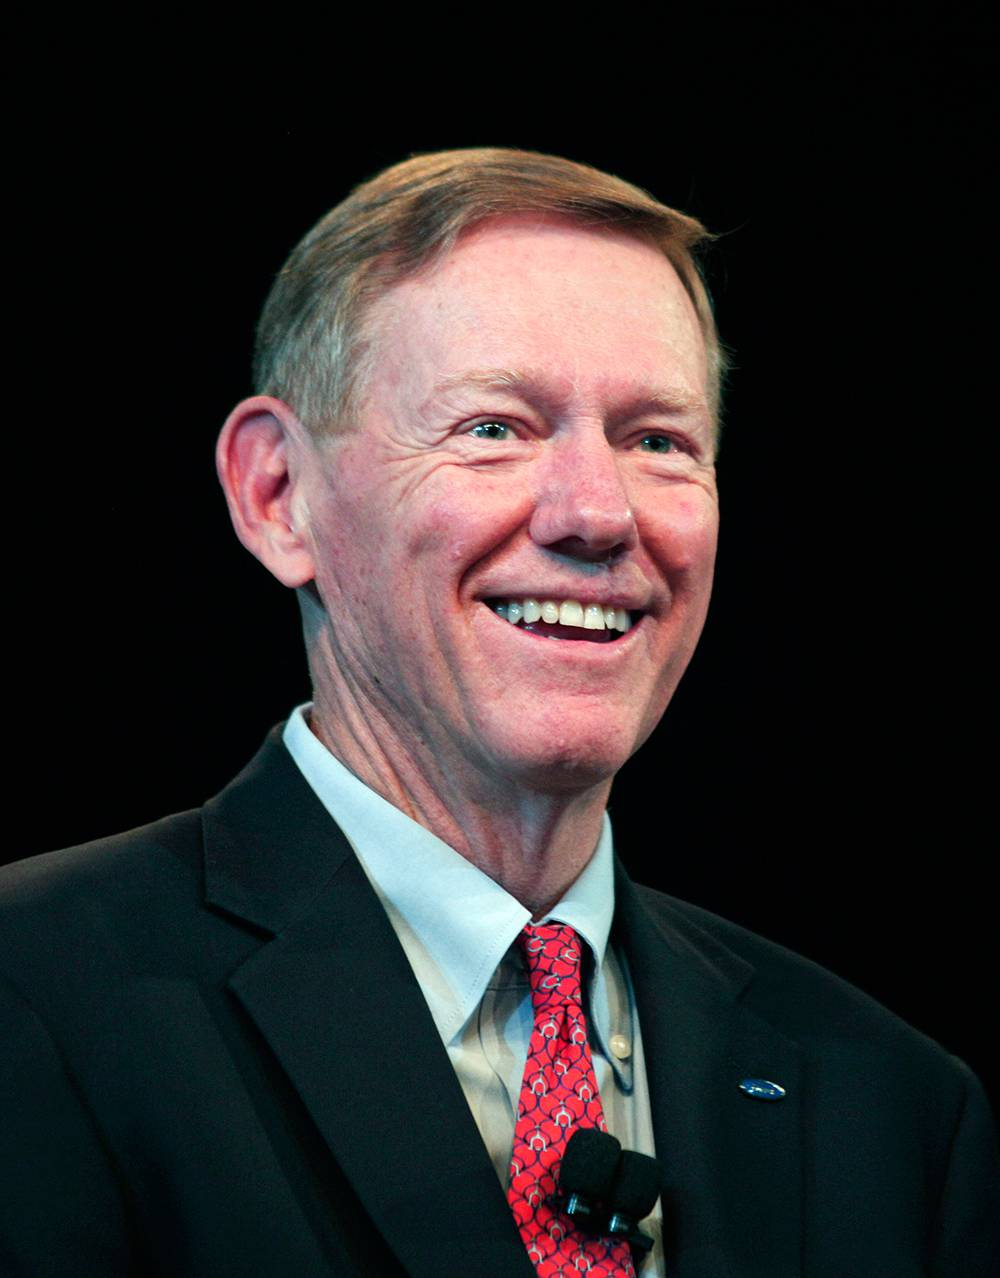 alan mulally portrait